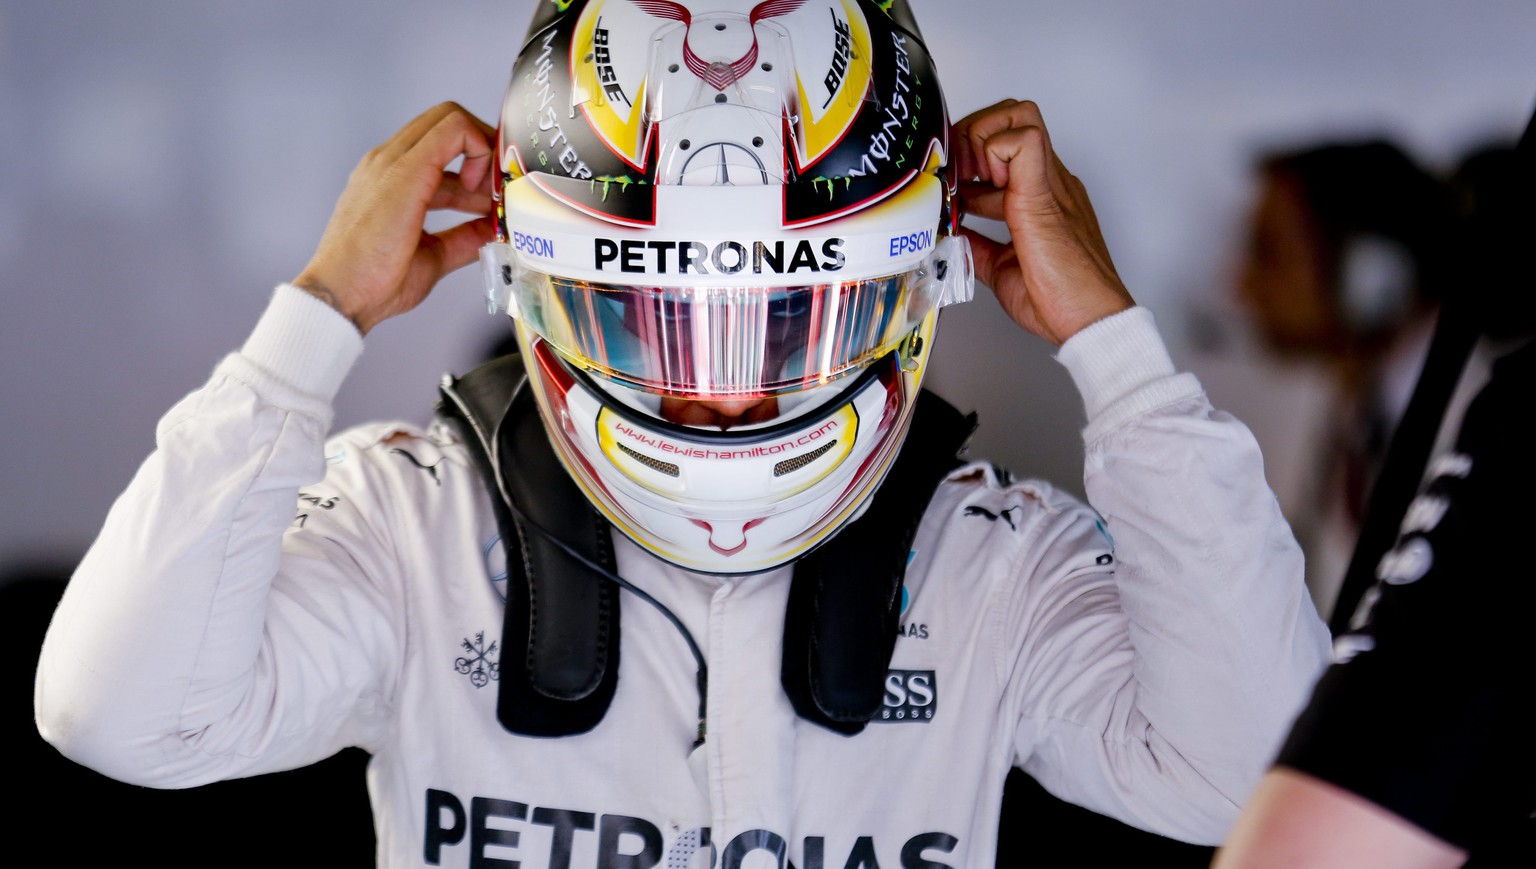 epa05260154 British Formula One driver Lewis Hamilton of Mercedes AMG GP prepares for the second practice session at the Shanghai International circuit in Shanghai, China, 15 April 2016. The 2016 Chinese Formula One Grand Prix will take place on 17 April.  EPA/DIEGO AZUBEL